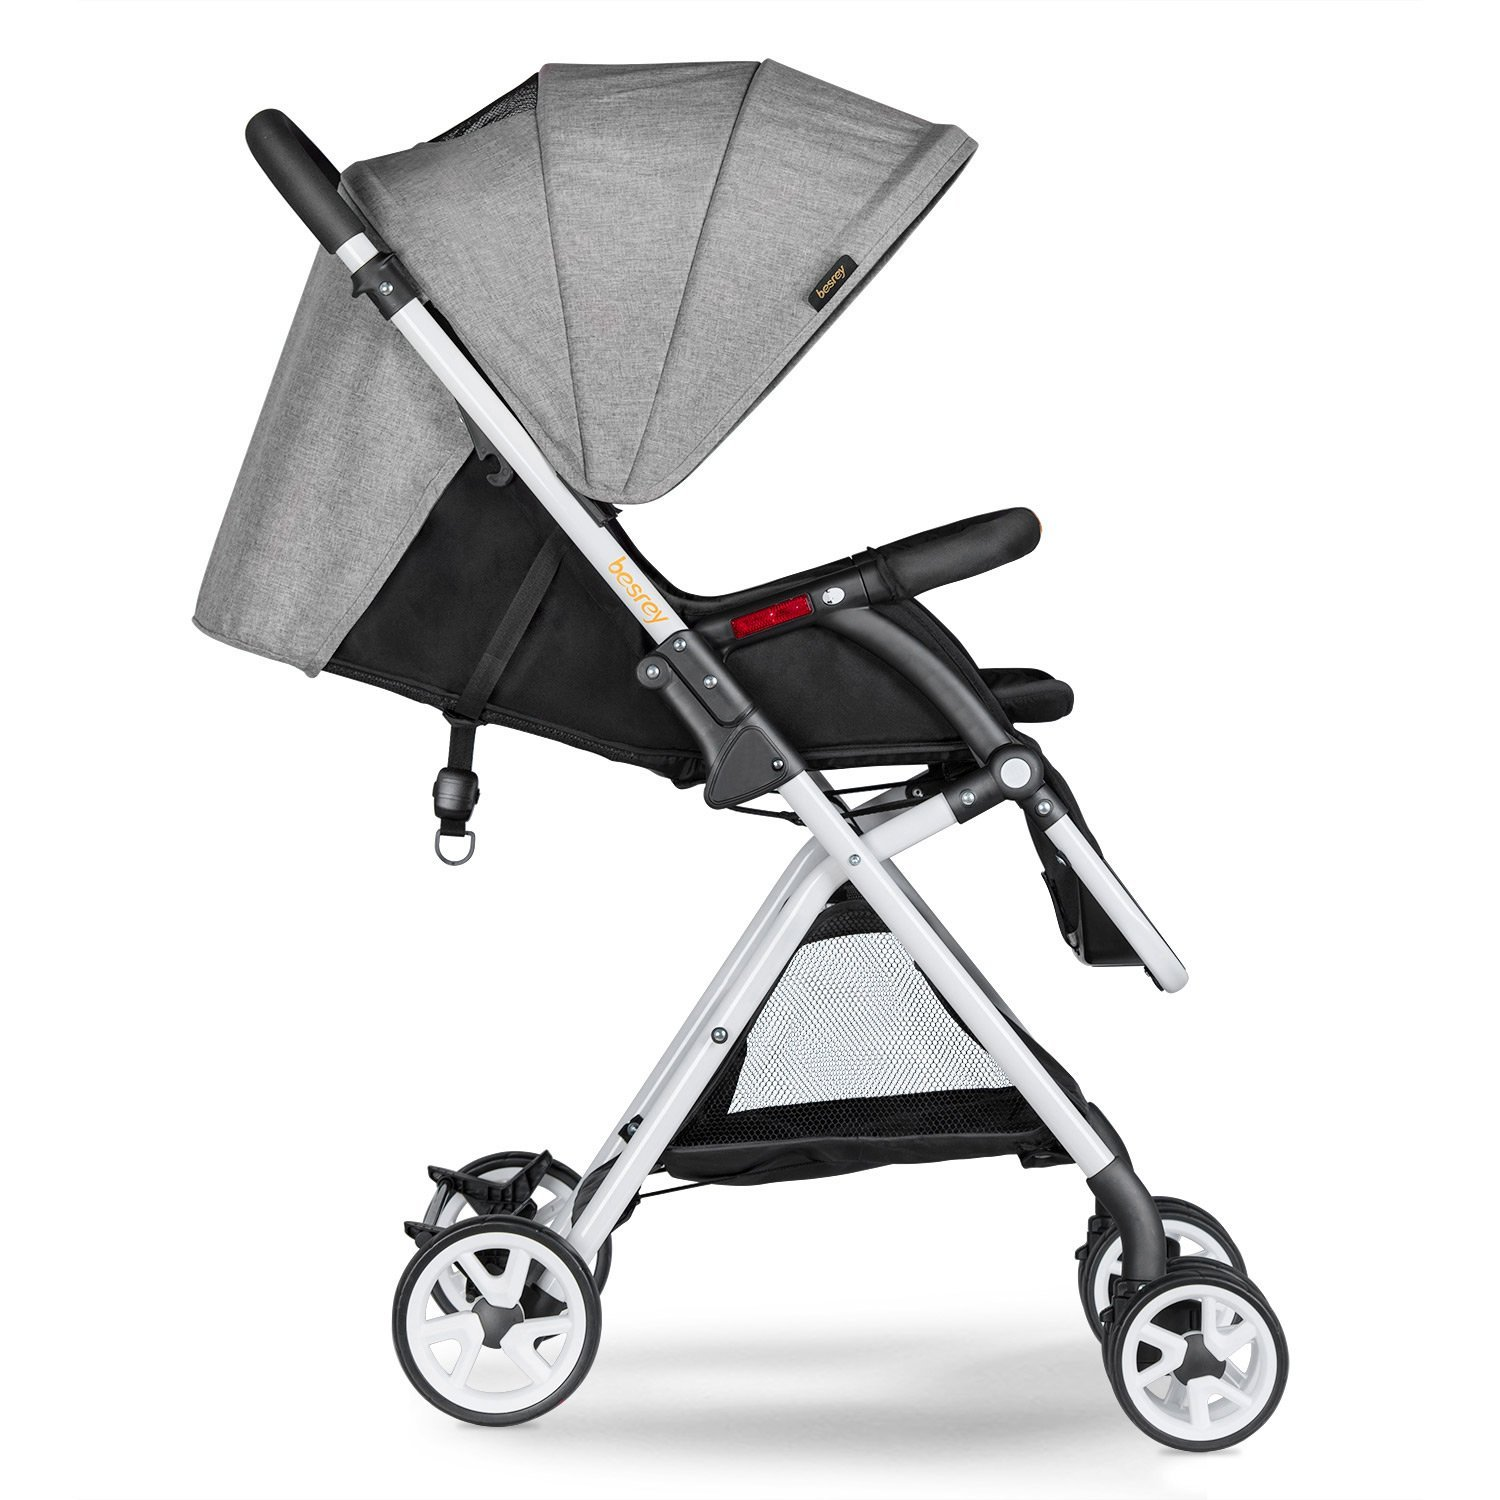 Besrey BR-C703S Lightweight Baby Stroller Foldable Lightweight Stroller,Infant Adjustable Pushchair Pram with Storage Basket,for 0-36 Months(Grey)